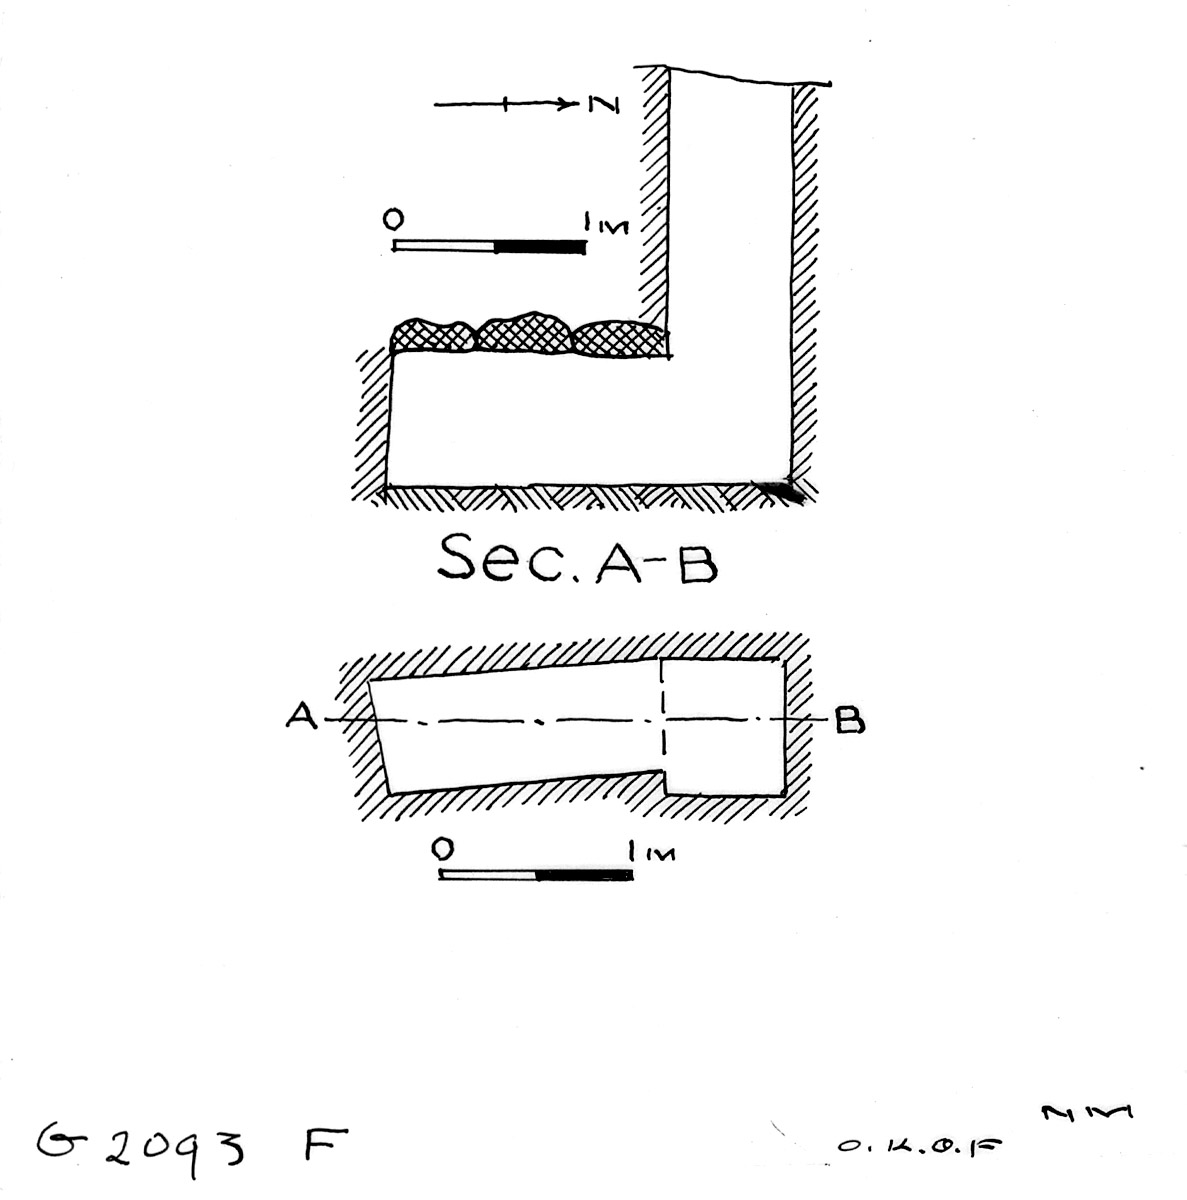 Maps and plans: G 2393, Shaft F